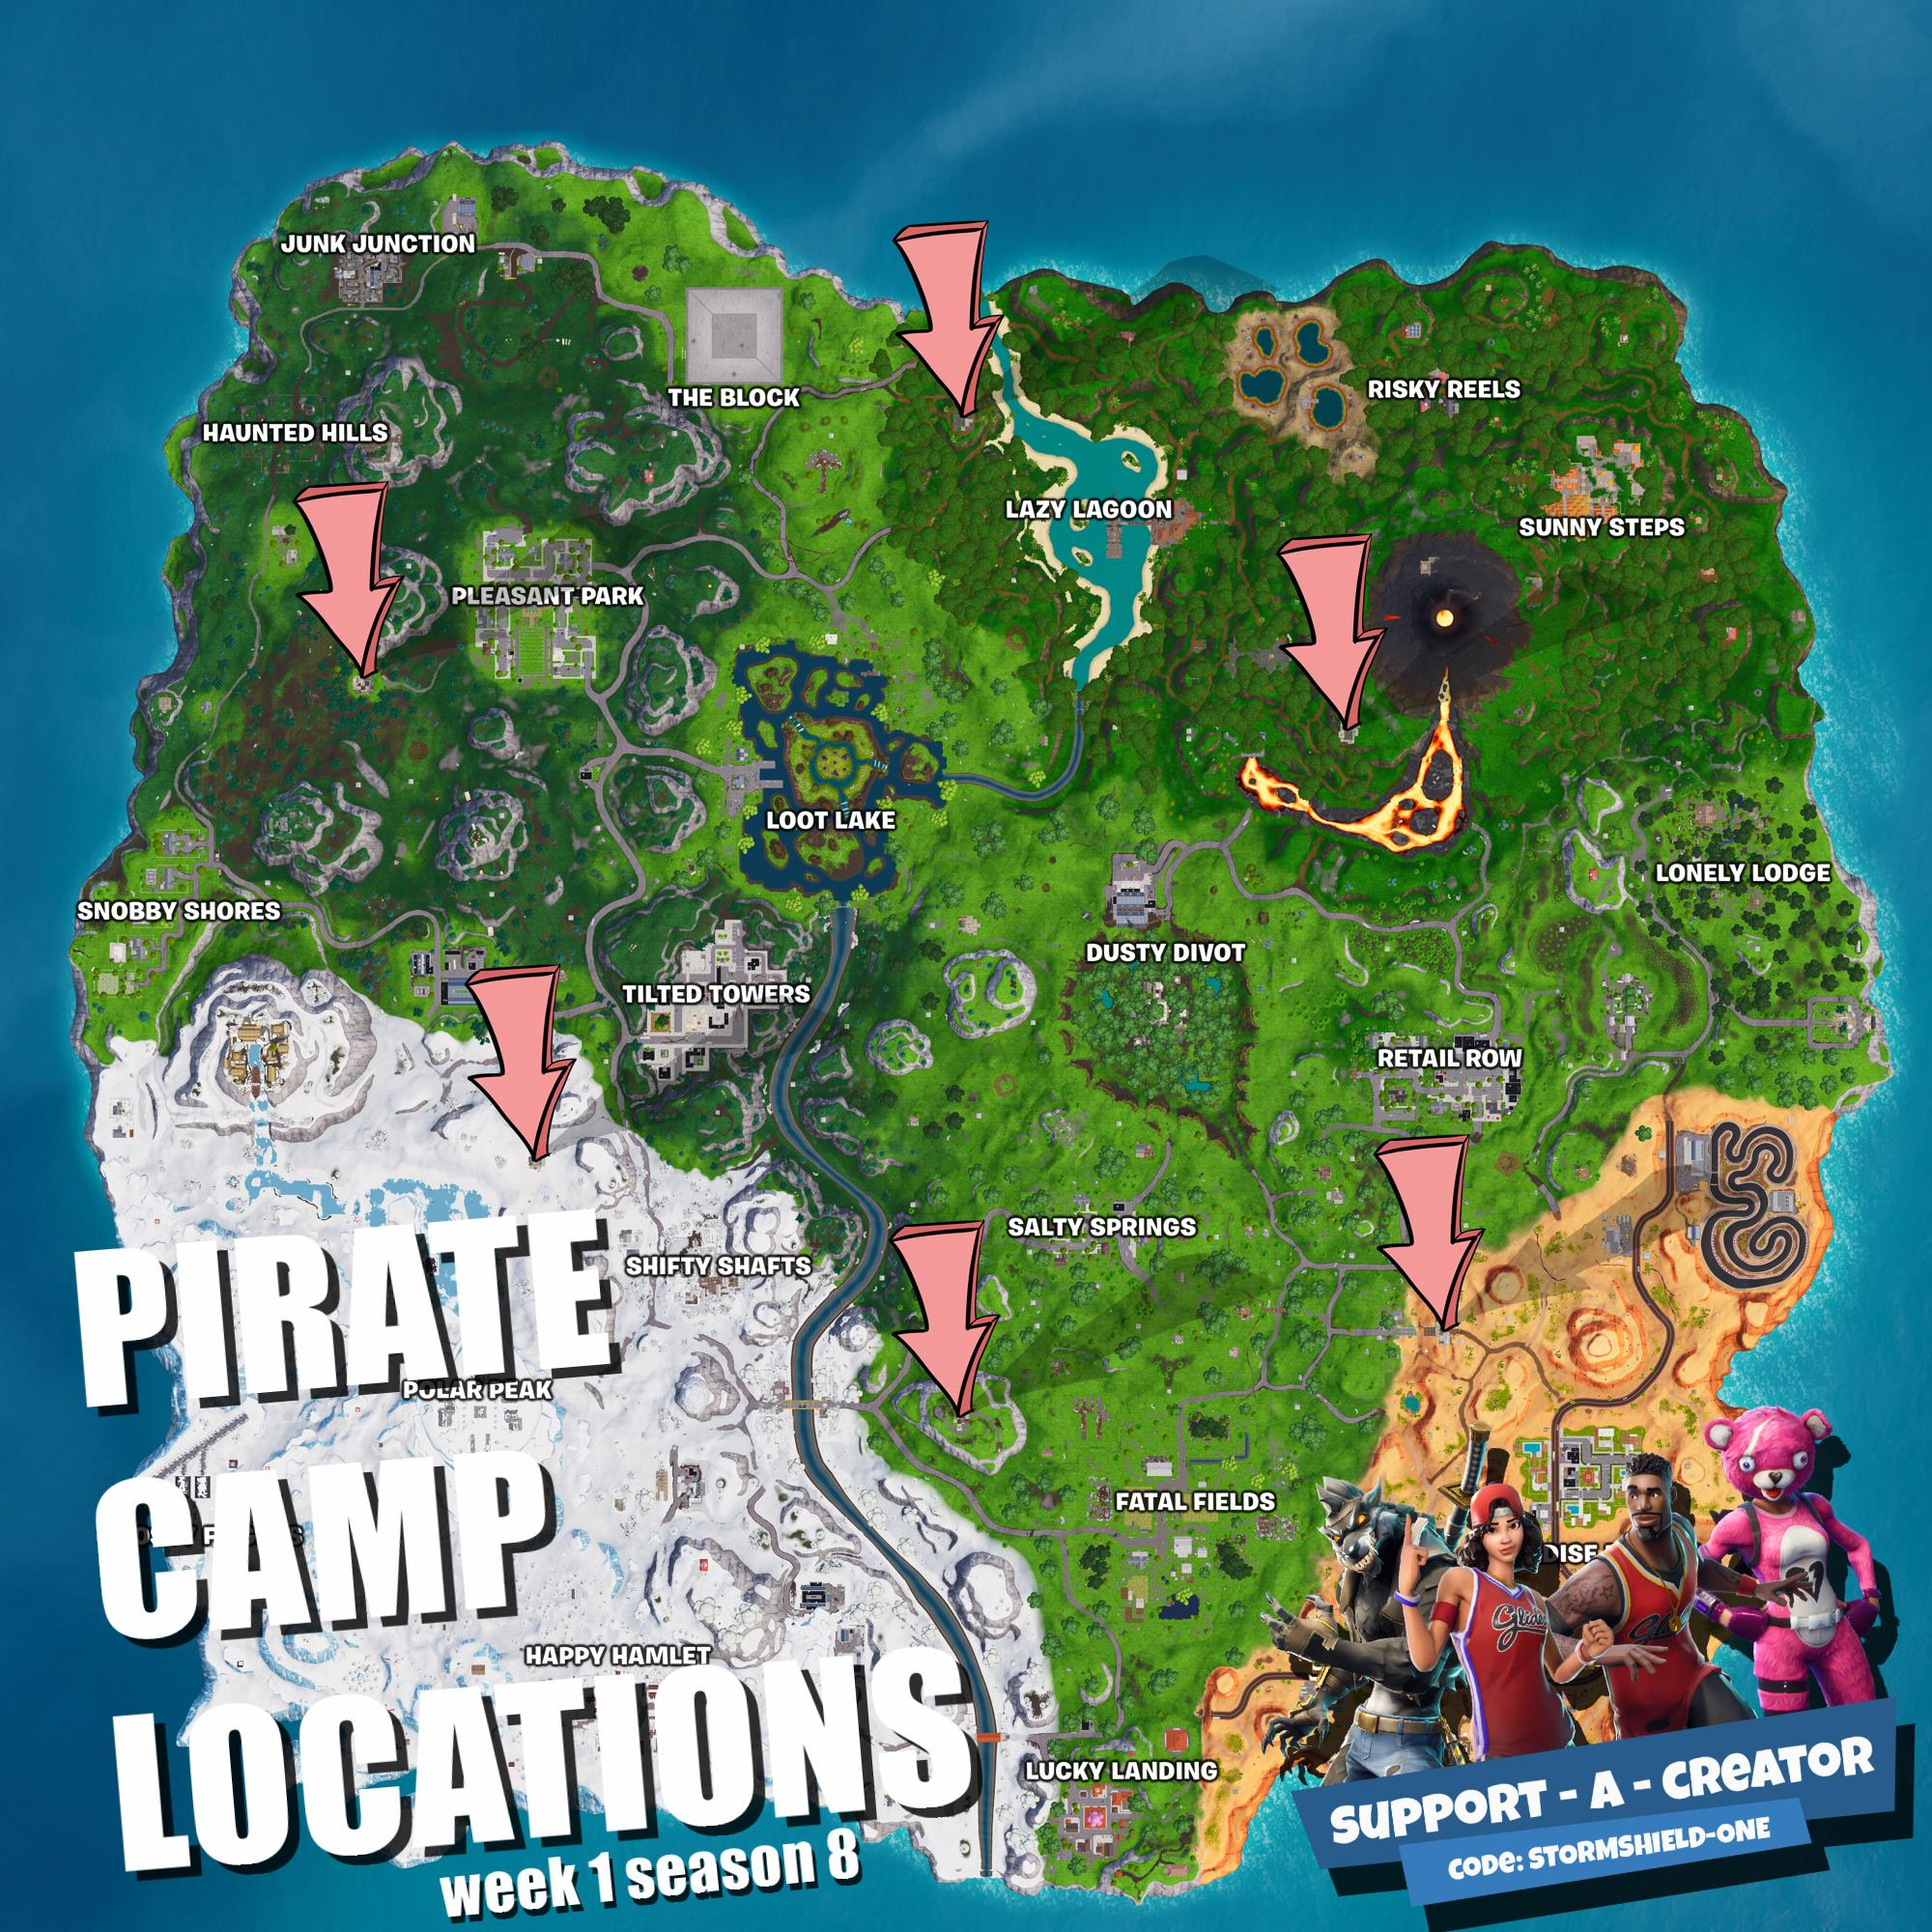 click for full resolution remember the expedition camps from season - jigsaw puzzle piece locations fortnite season 8